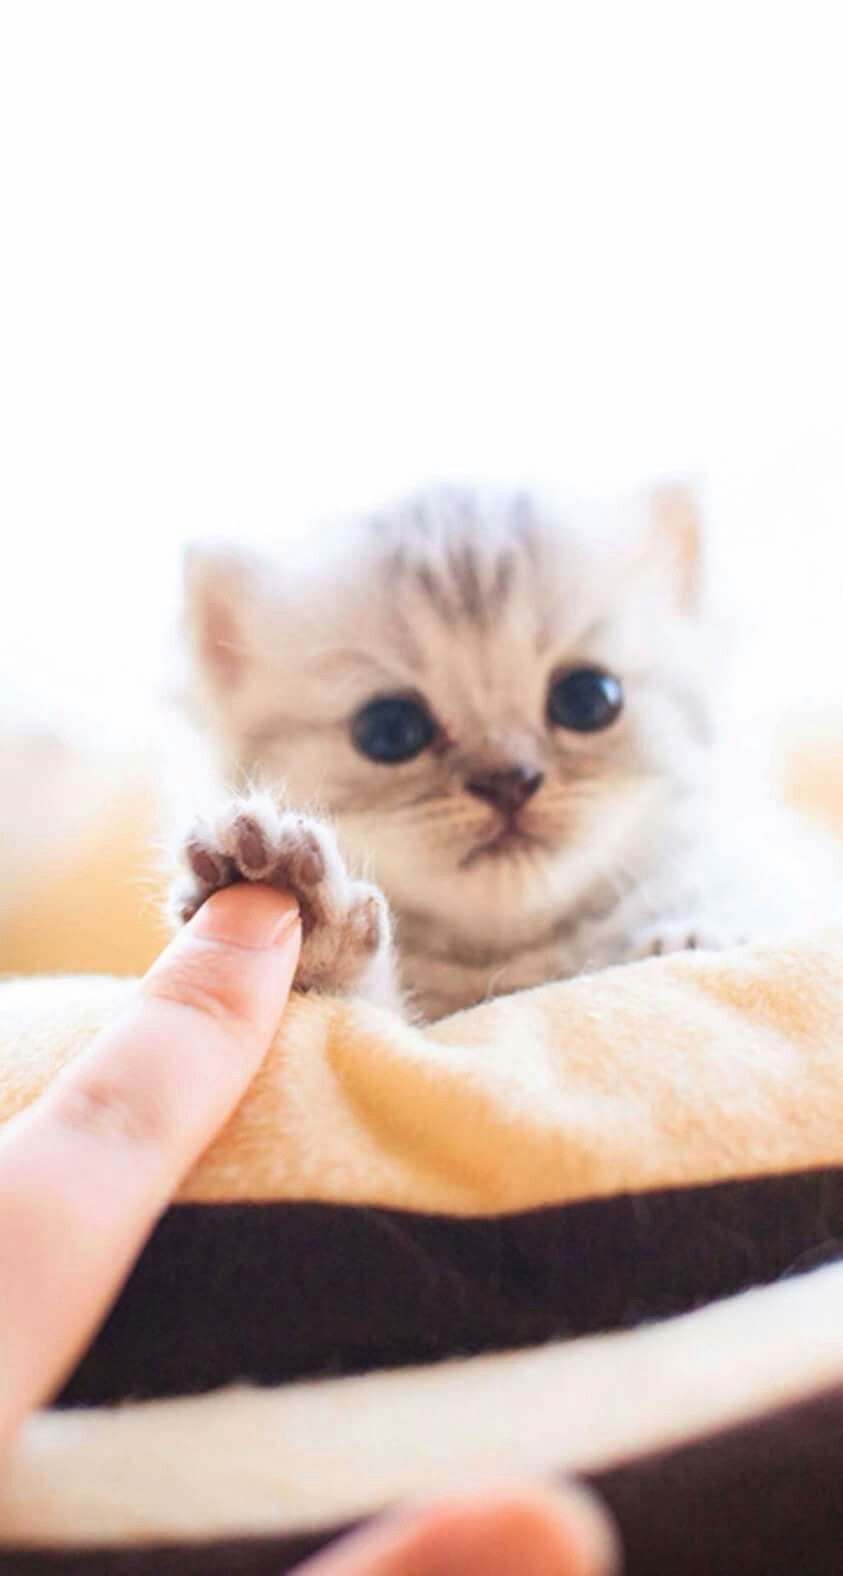 Pin By Soldier On Cute Cat Cute Animals Cute Baby Animals Kittens Cutest